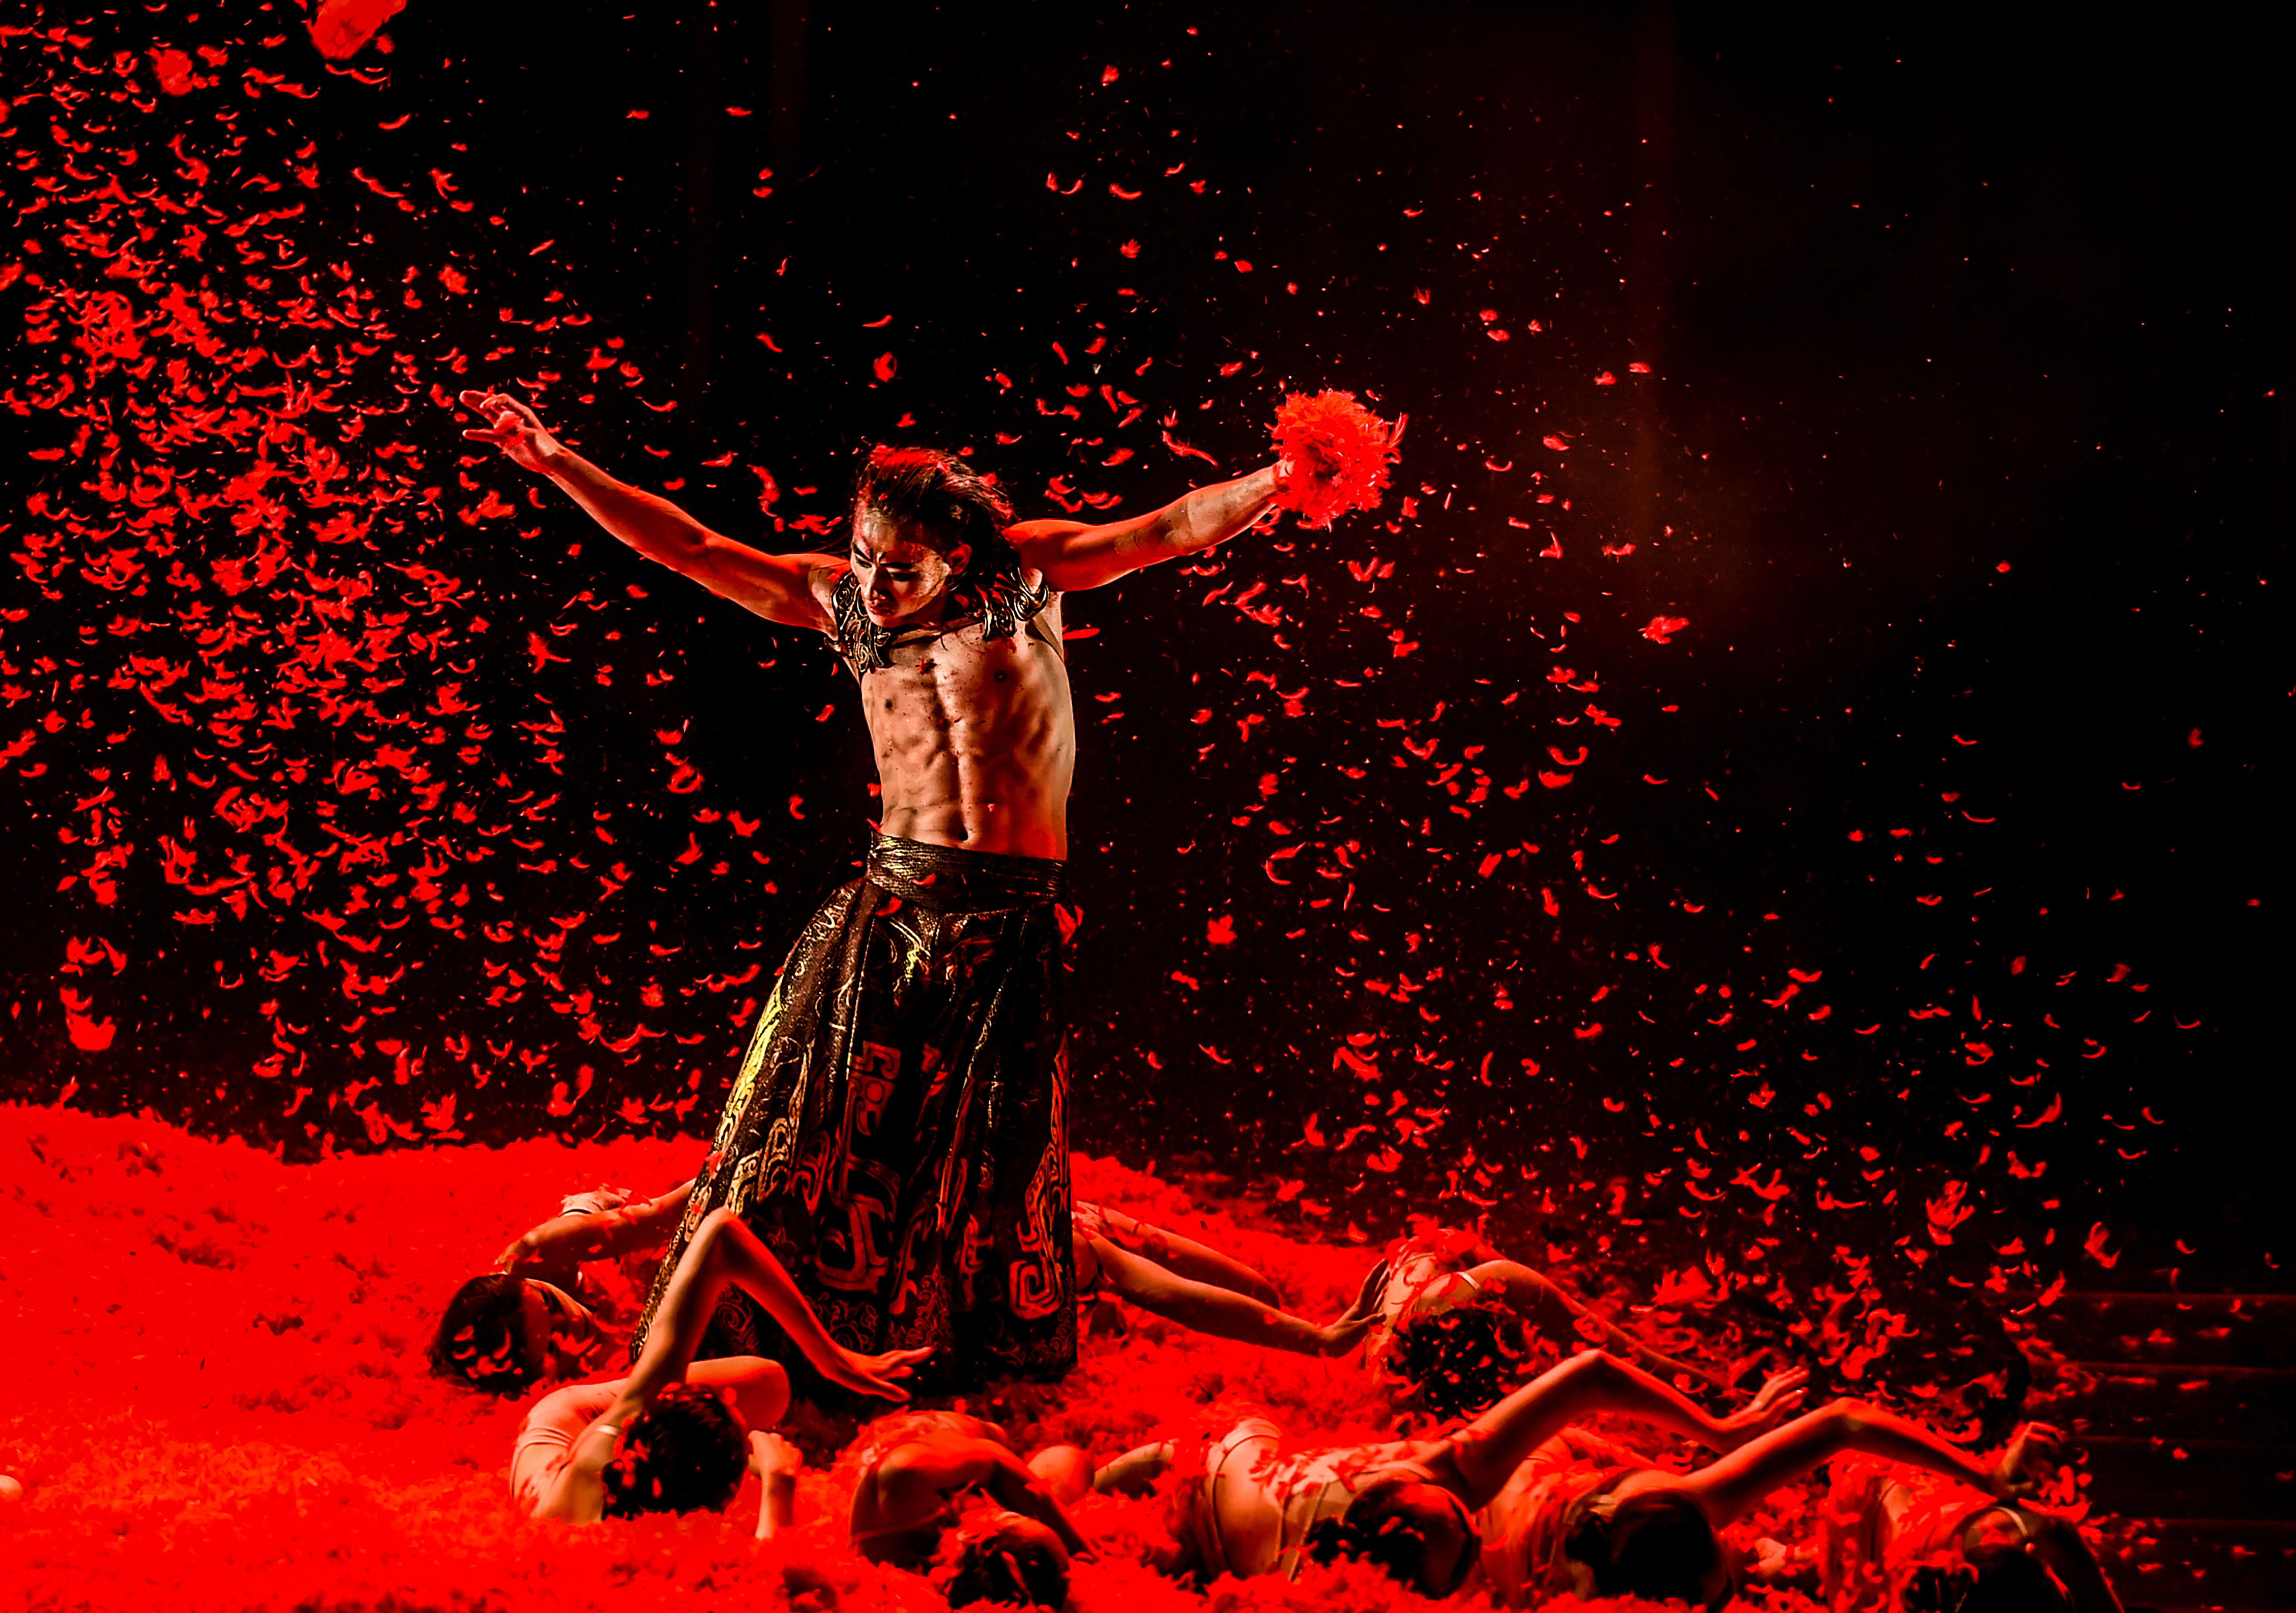 Dancer with red background